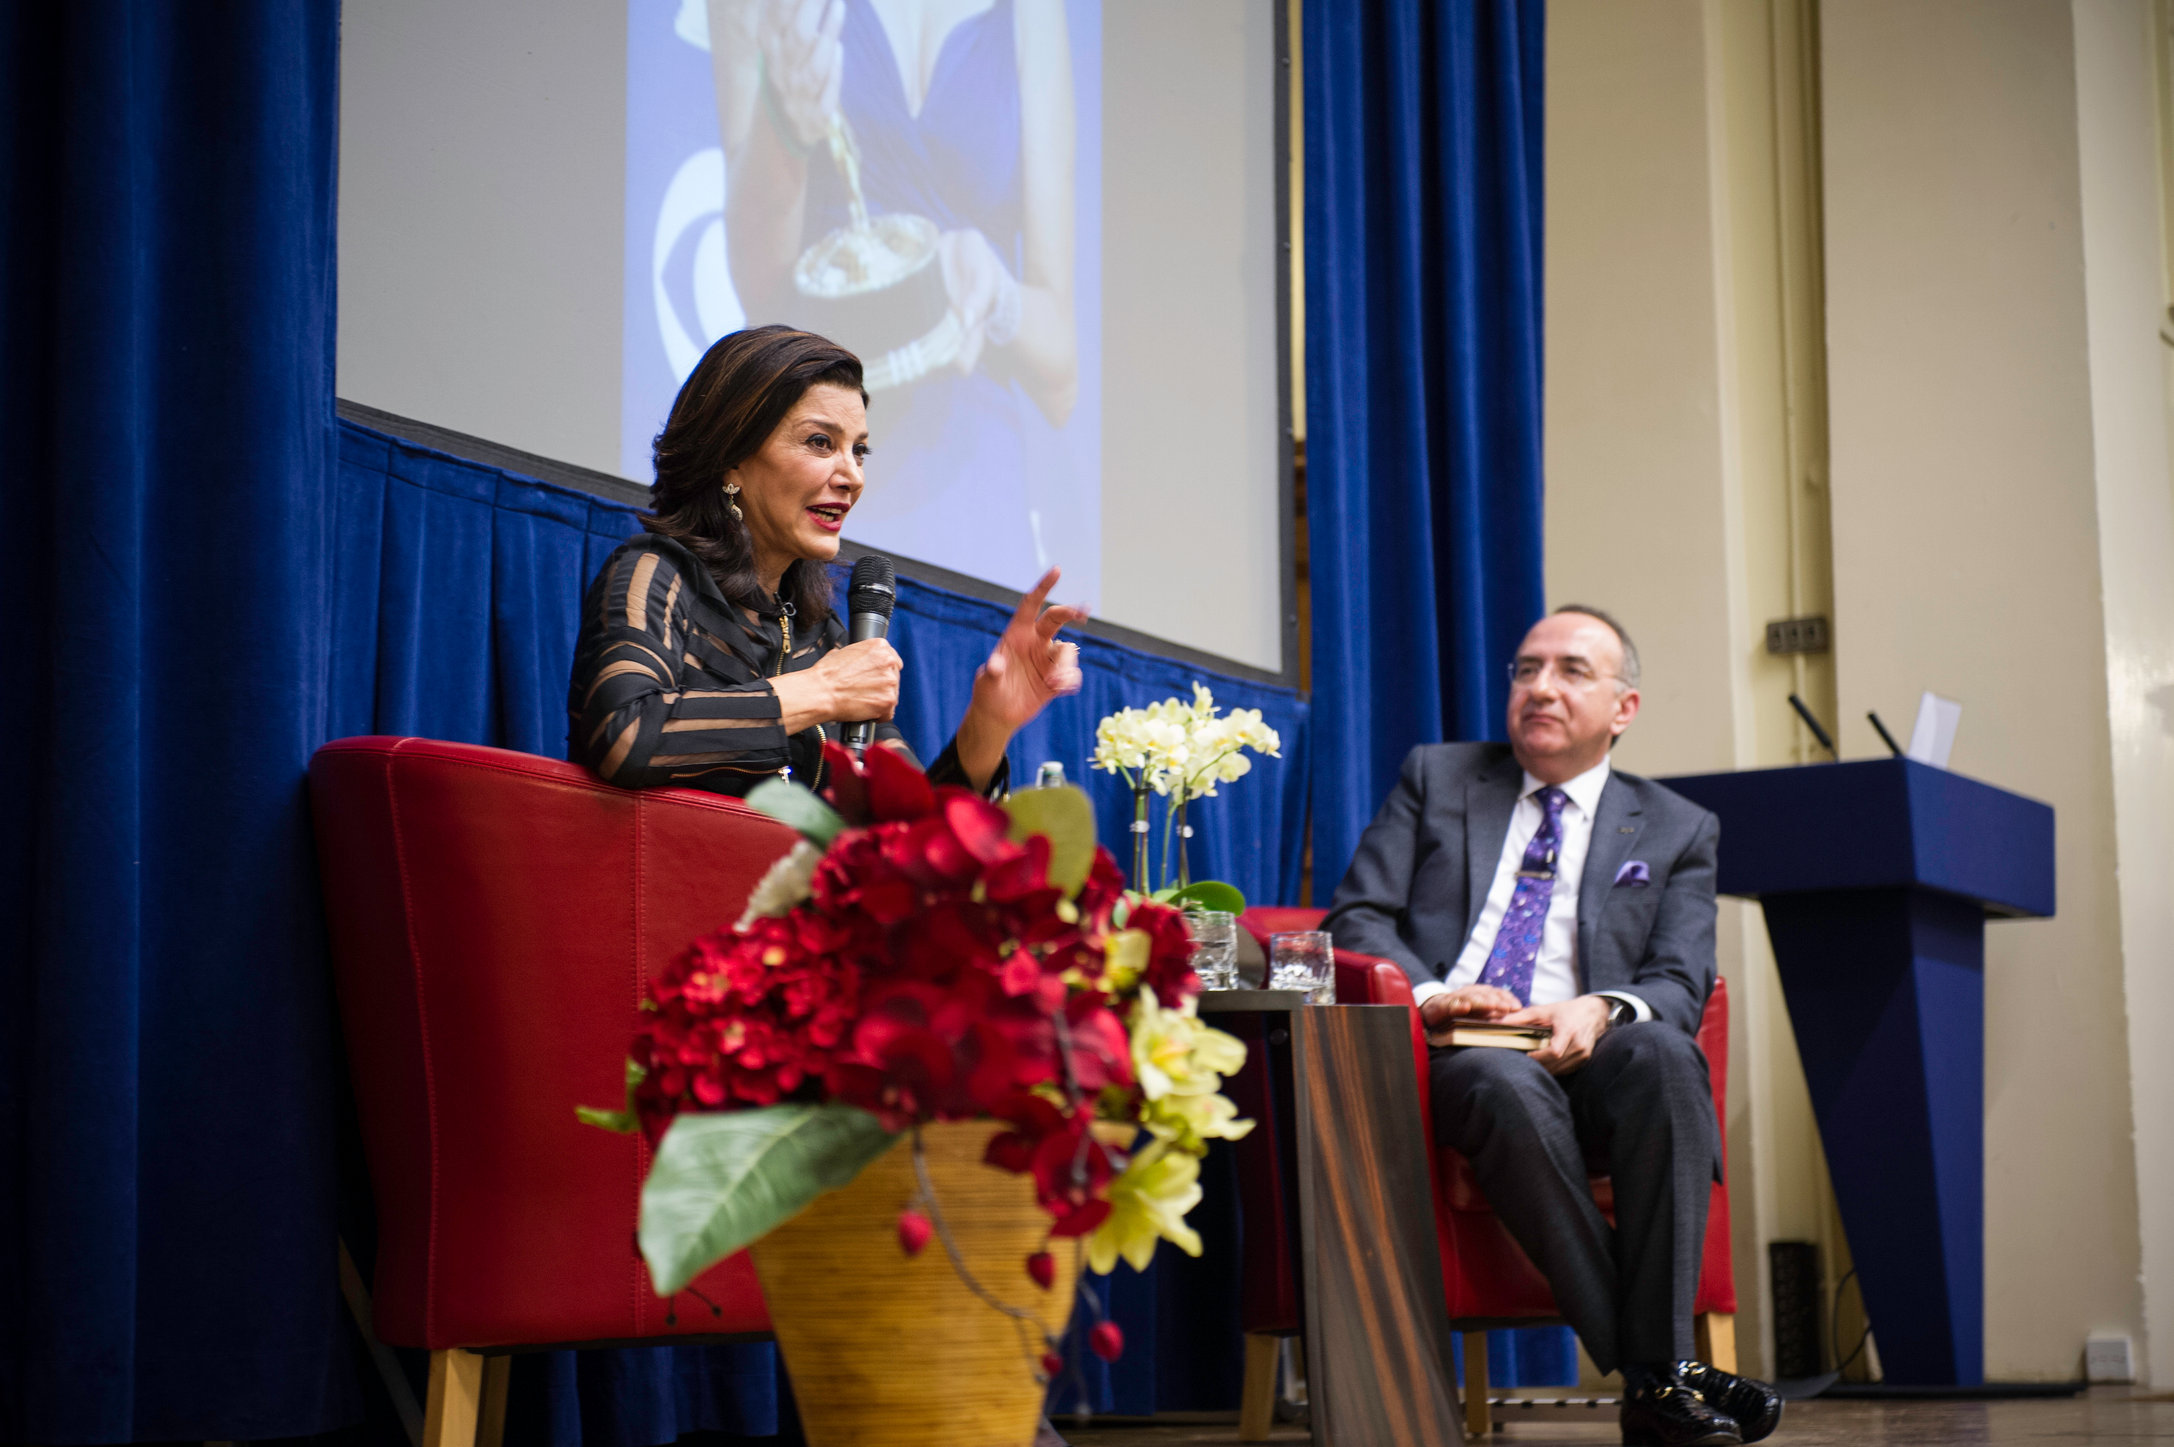 Ludovic_Robert_Photographer_Aneveningwith_Shohreh_Aghdashloo_November_2013-20131129-0299.jpg